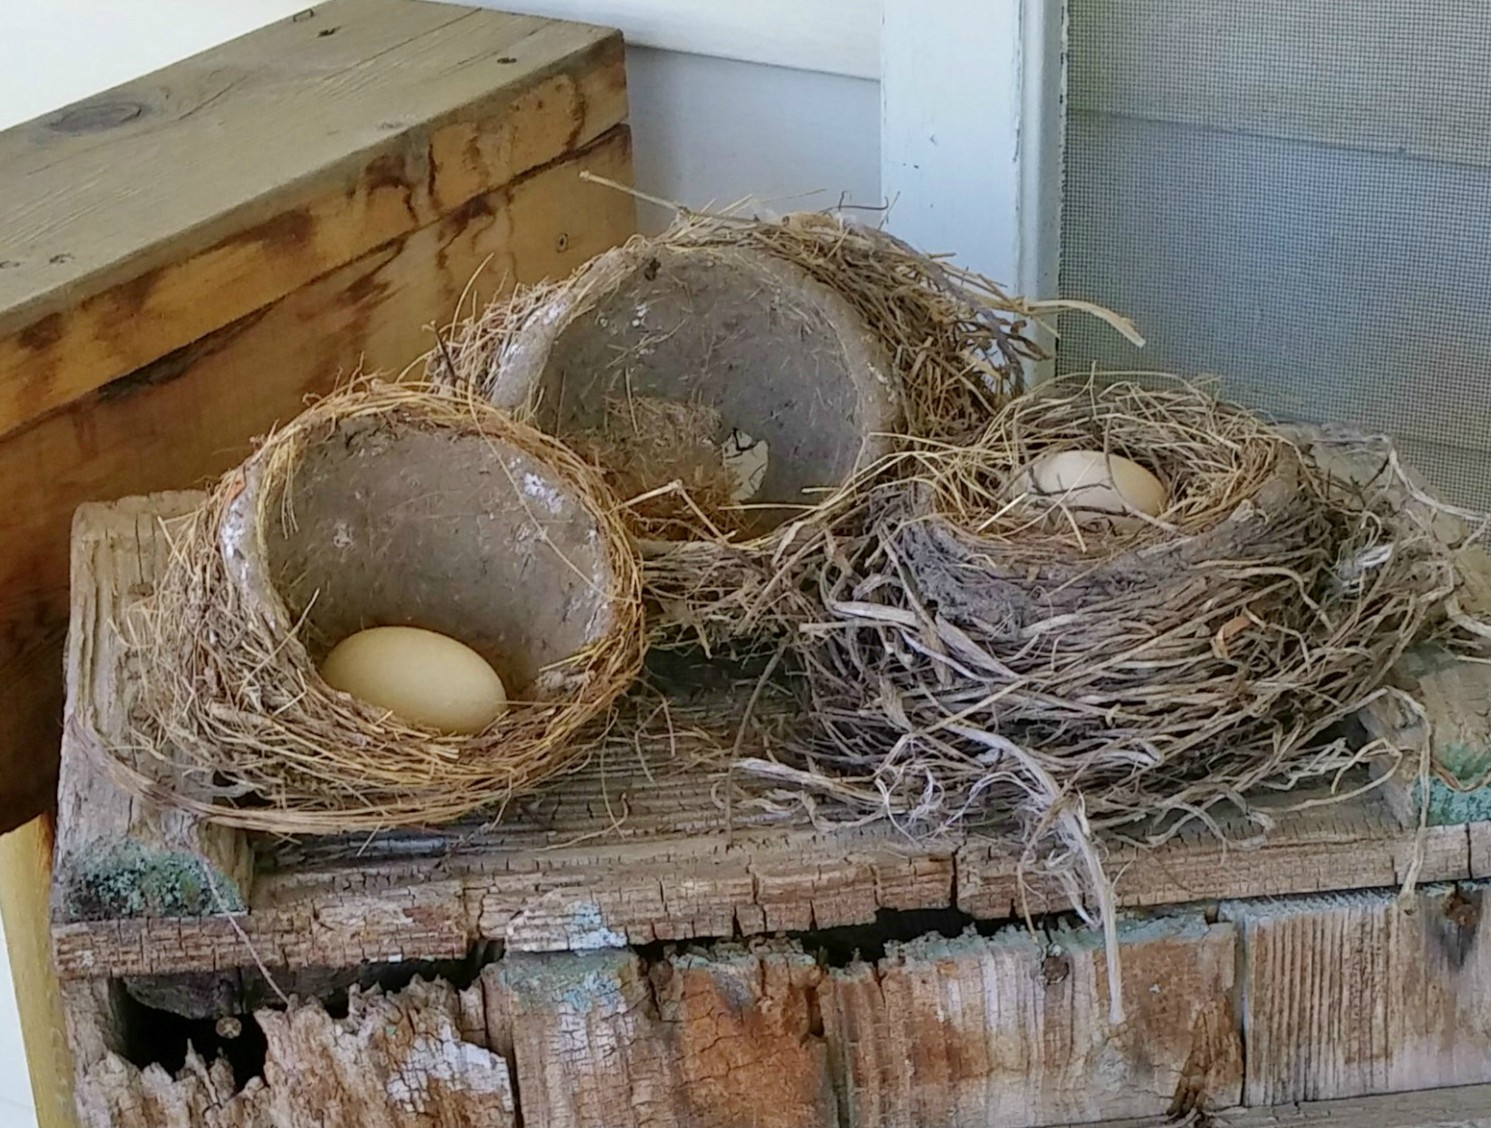 collection of bird's nests